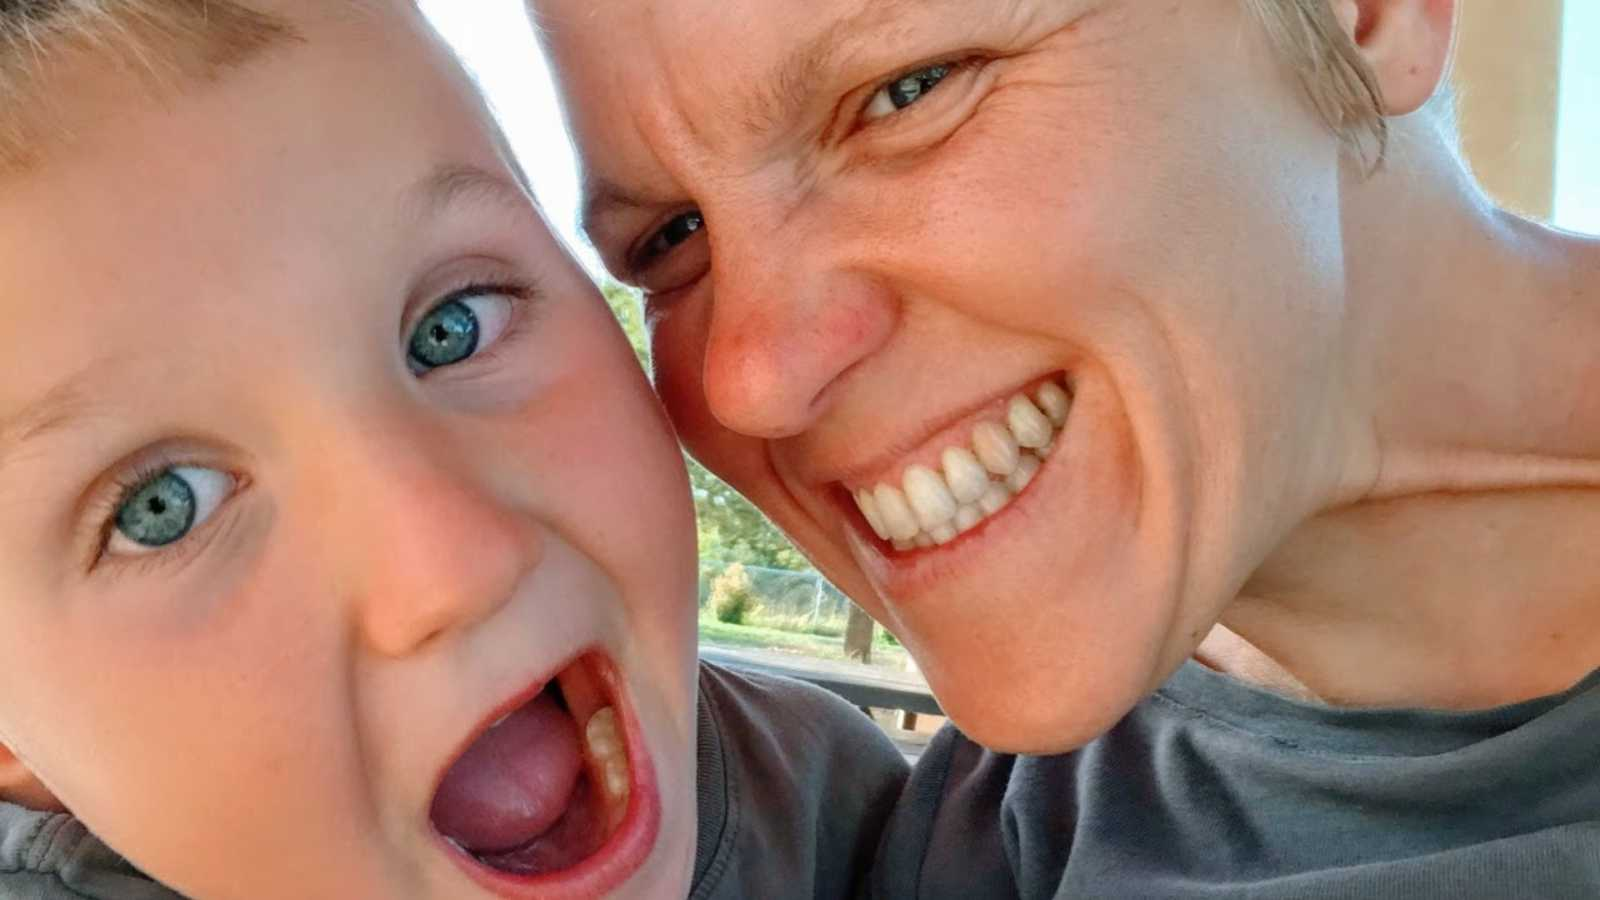 An autistic mom and her son make silly faces together